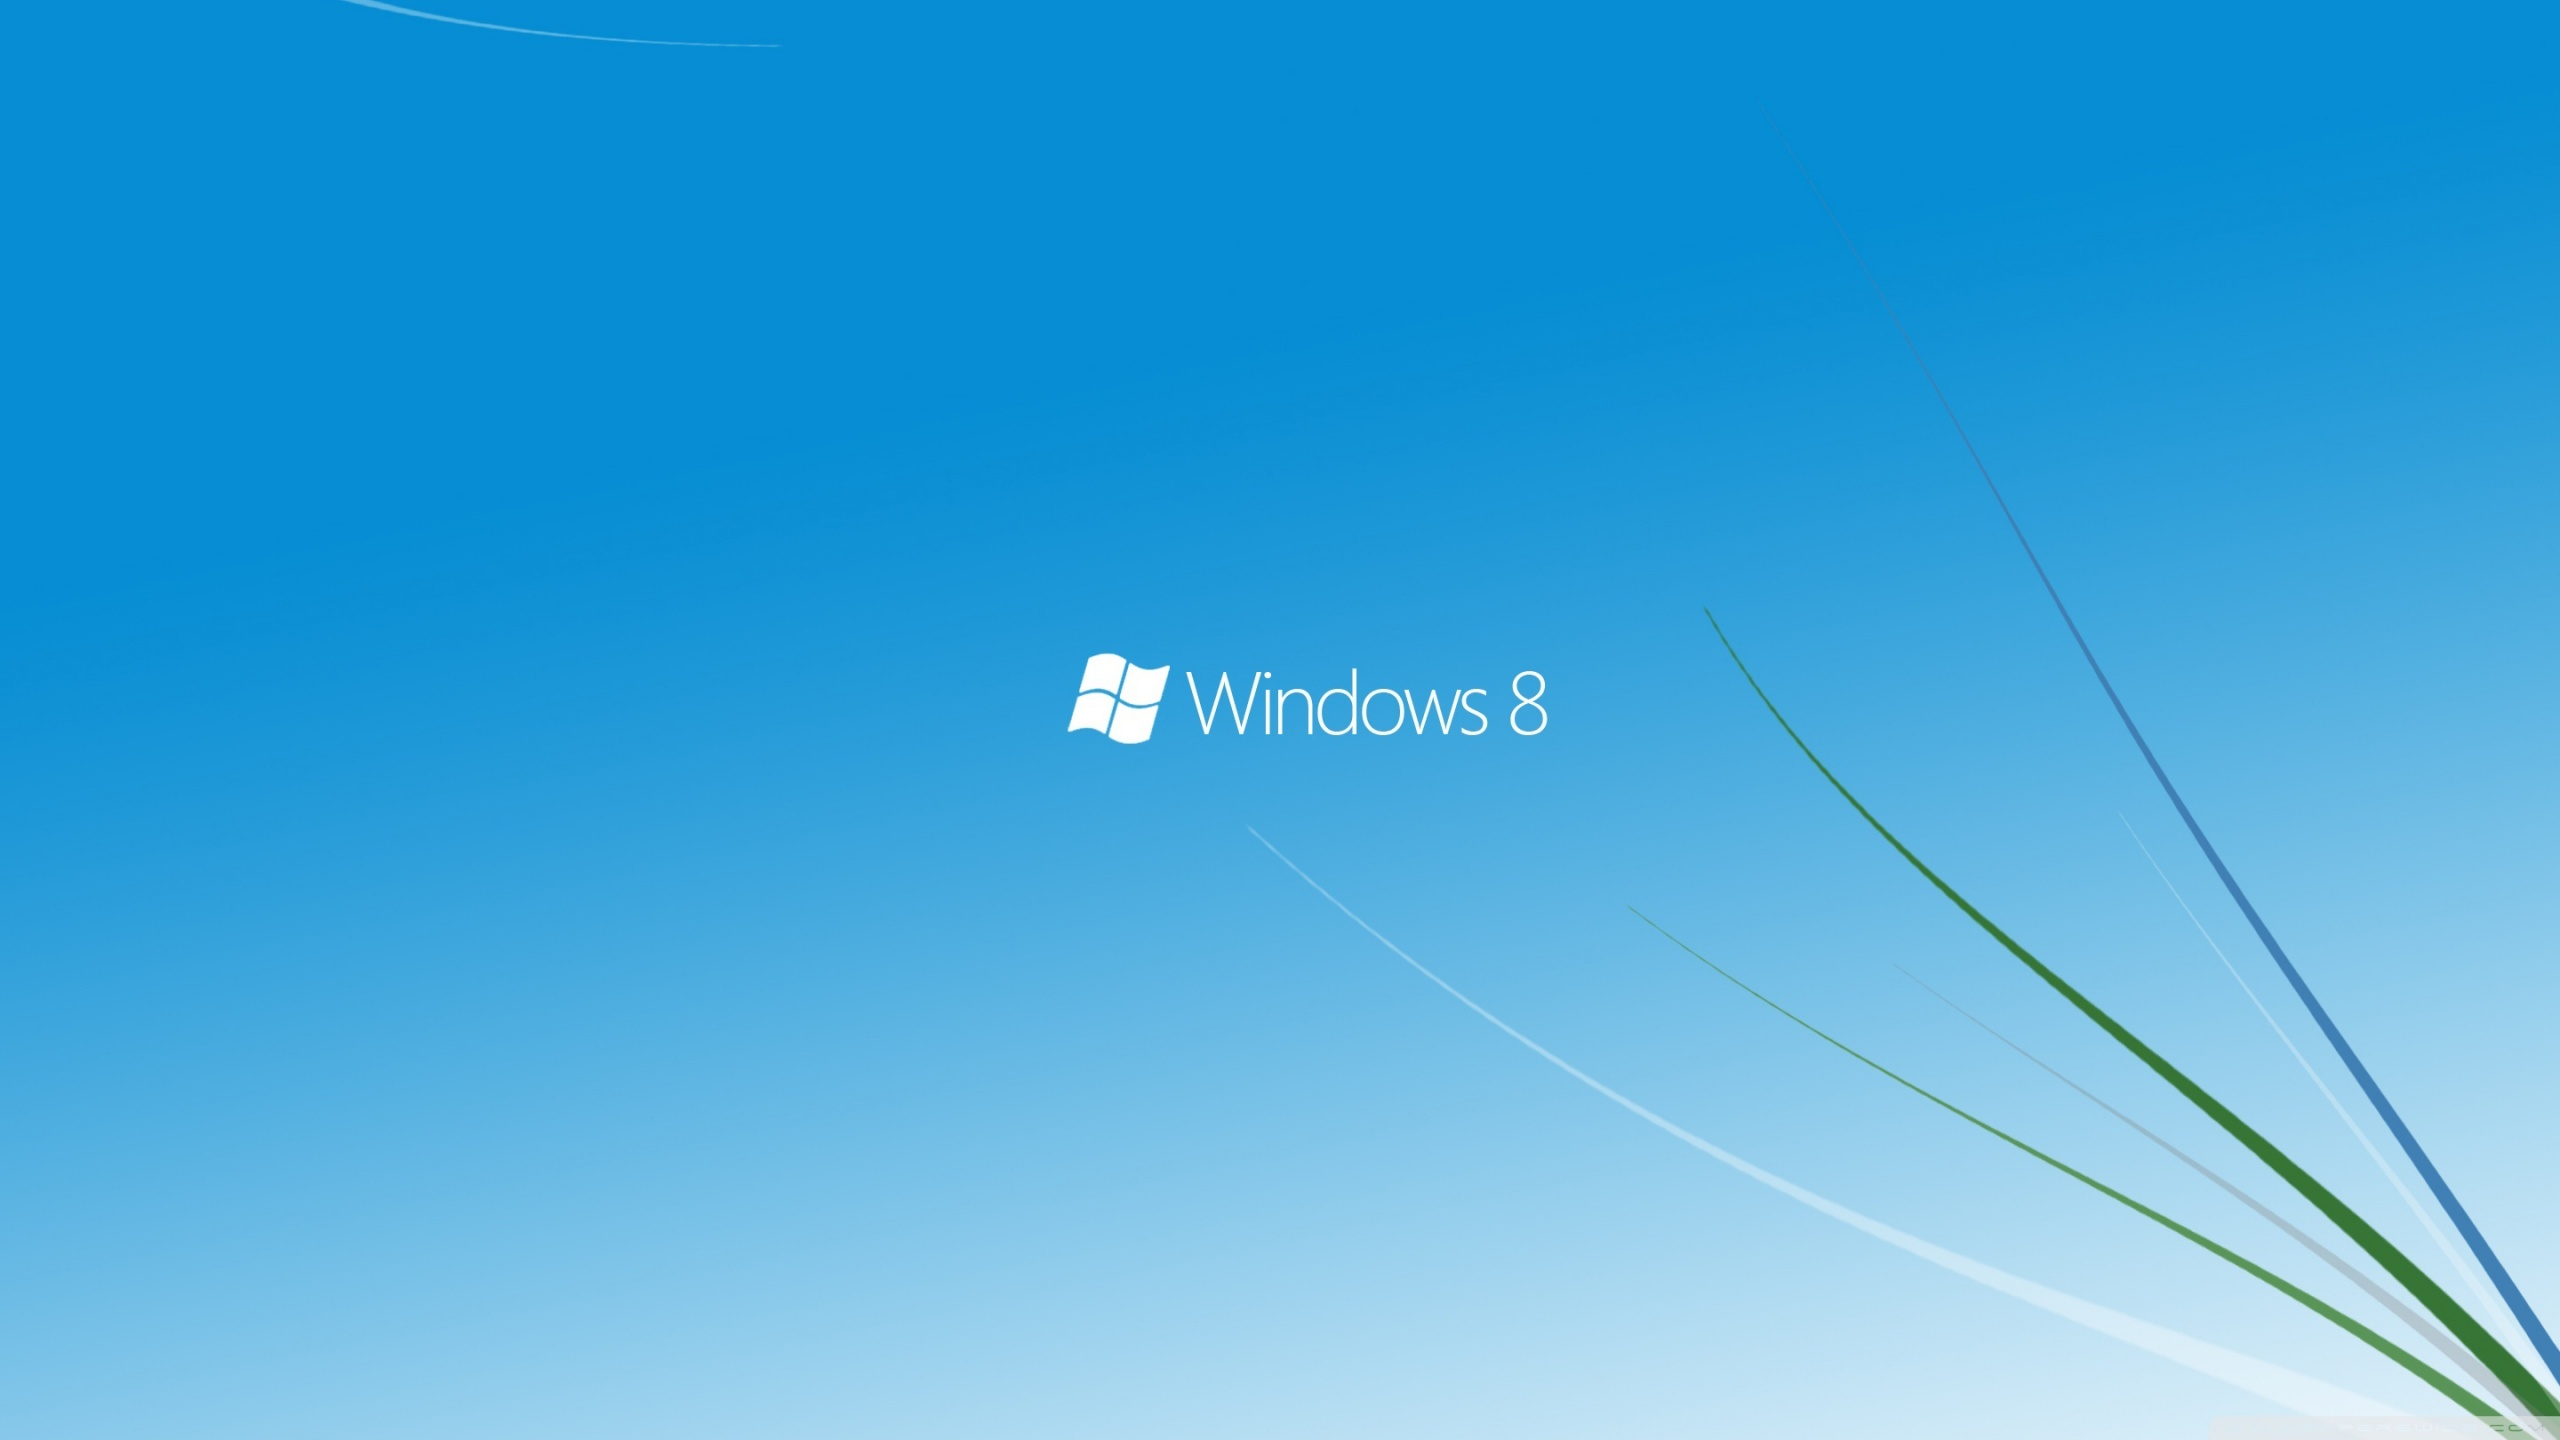 Free Desktop Wallpaper Windows